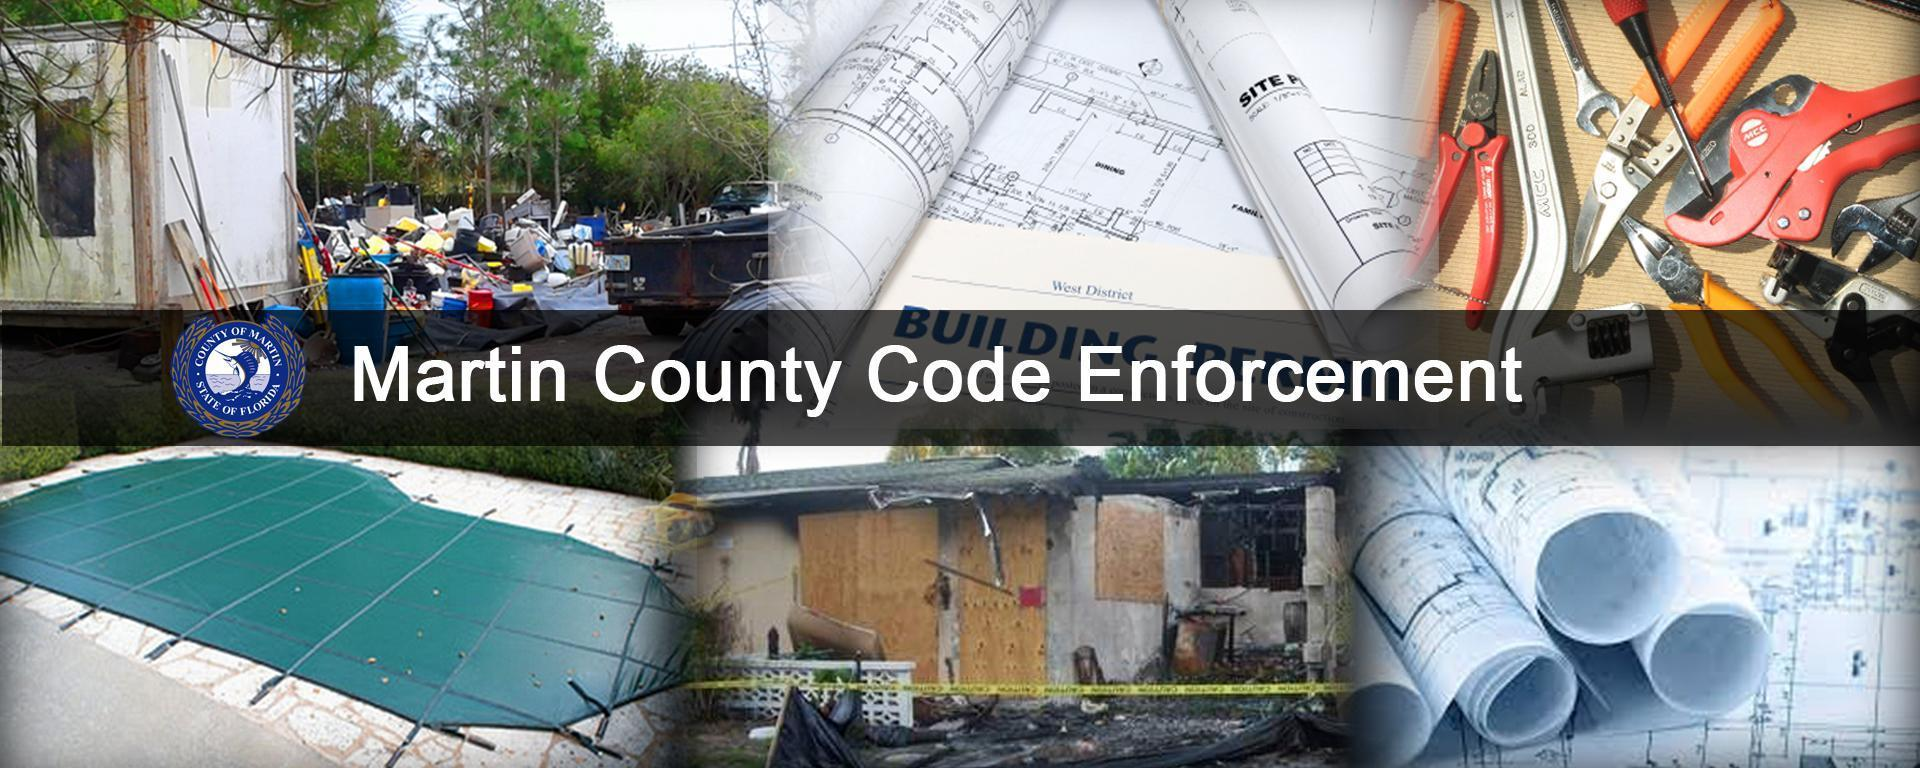 Martin County Code Enforcement